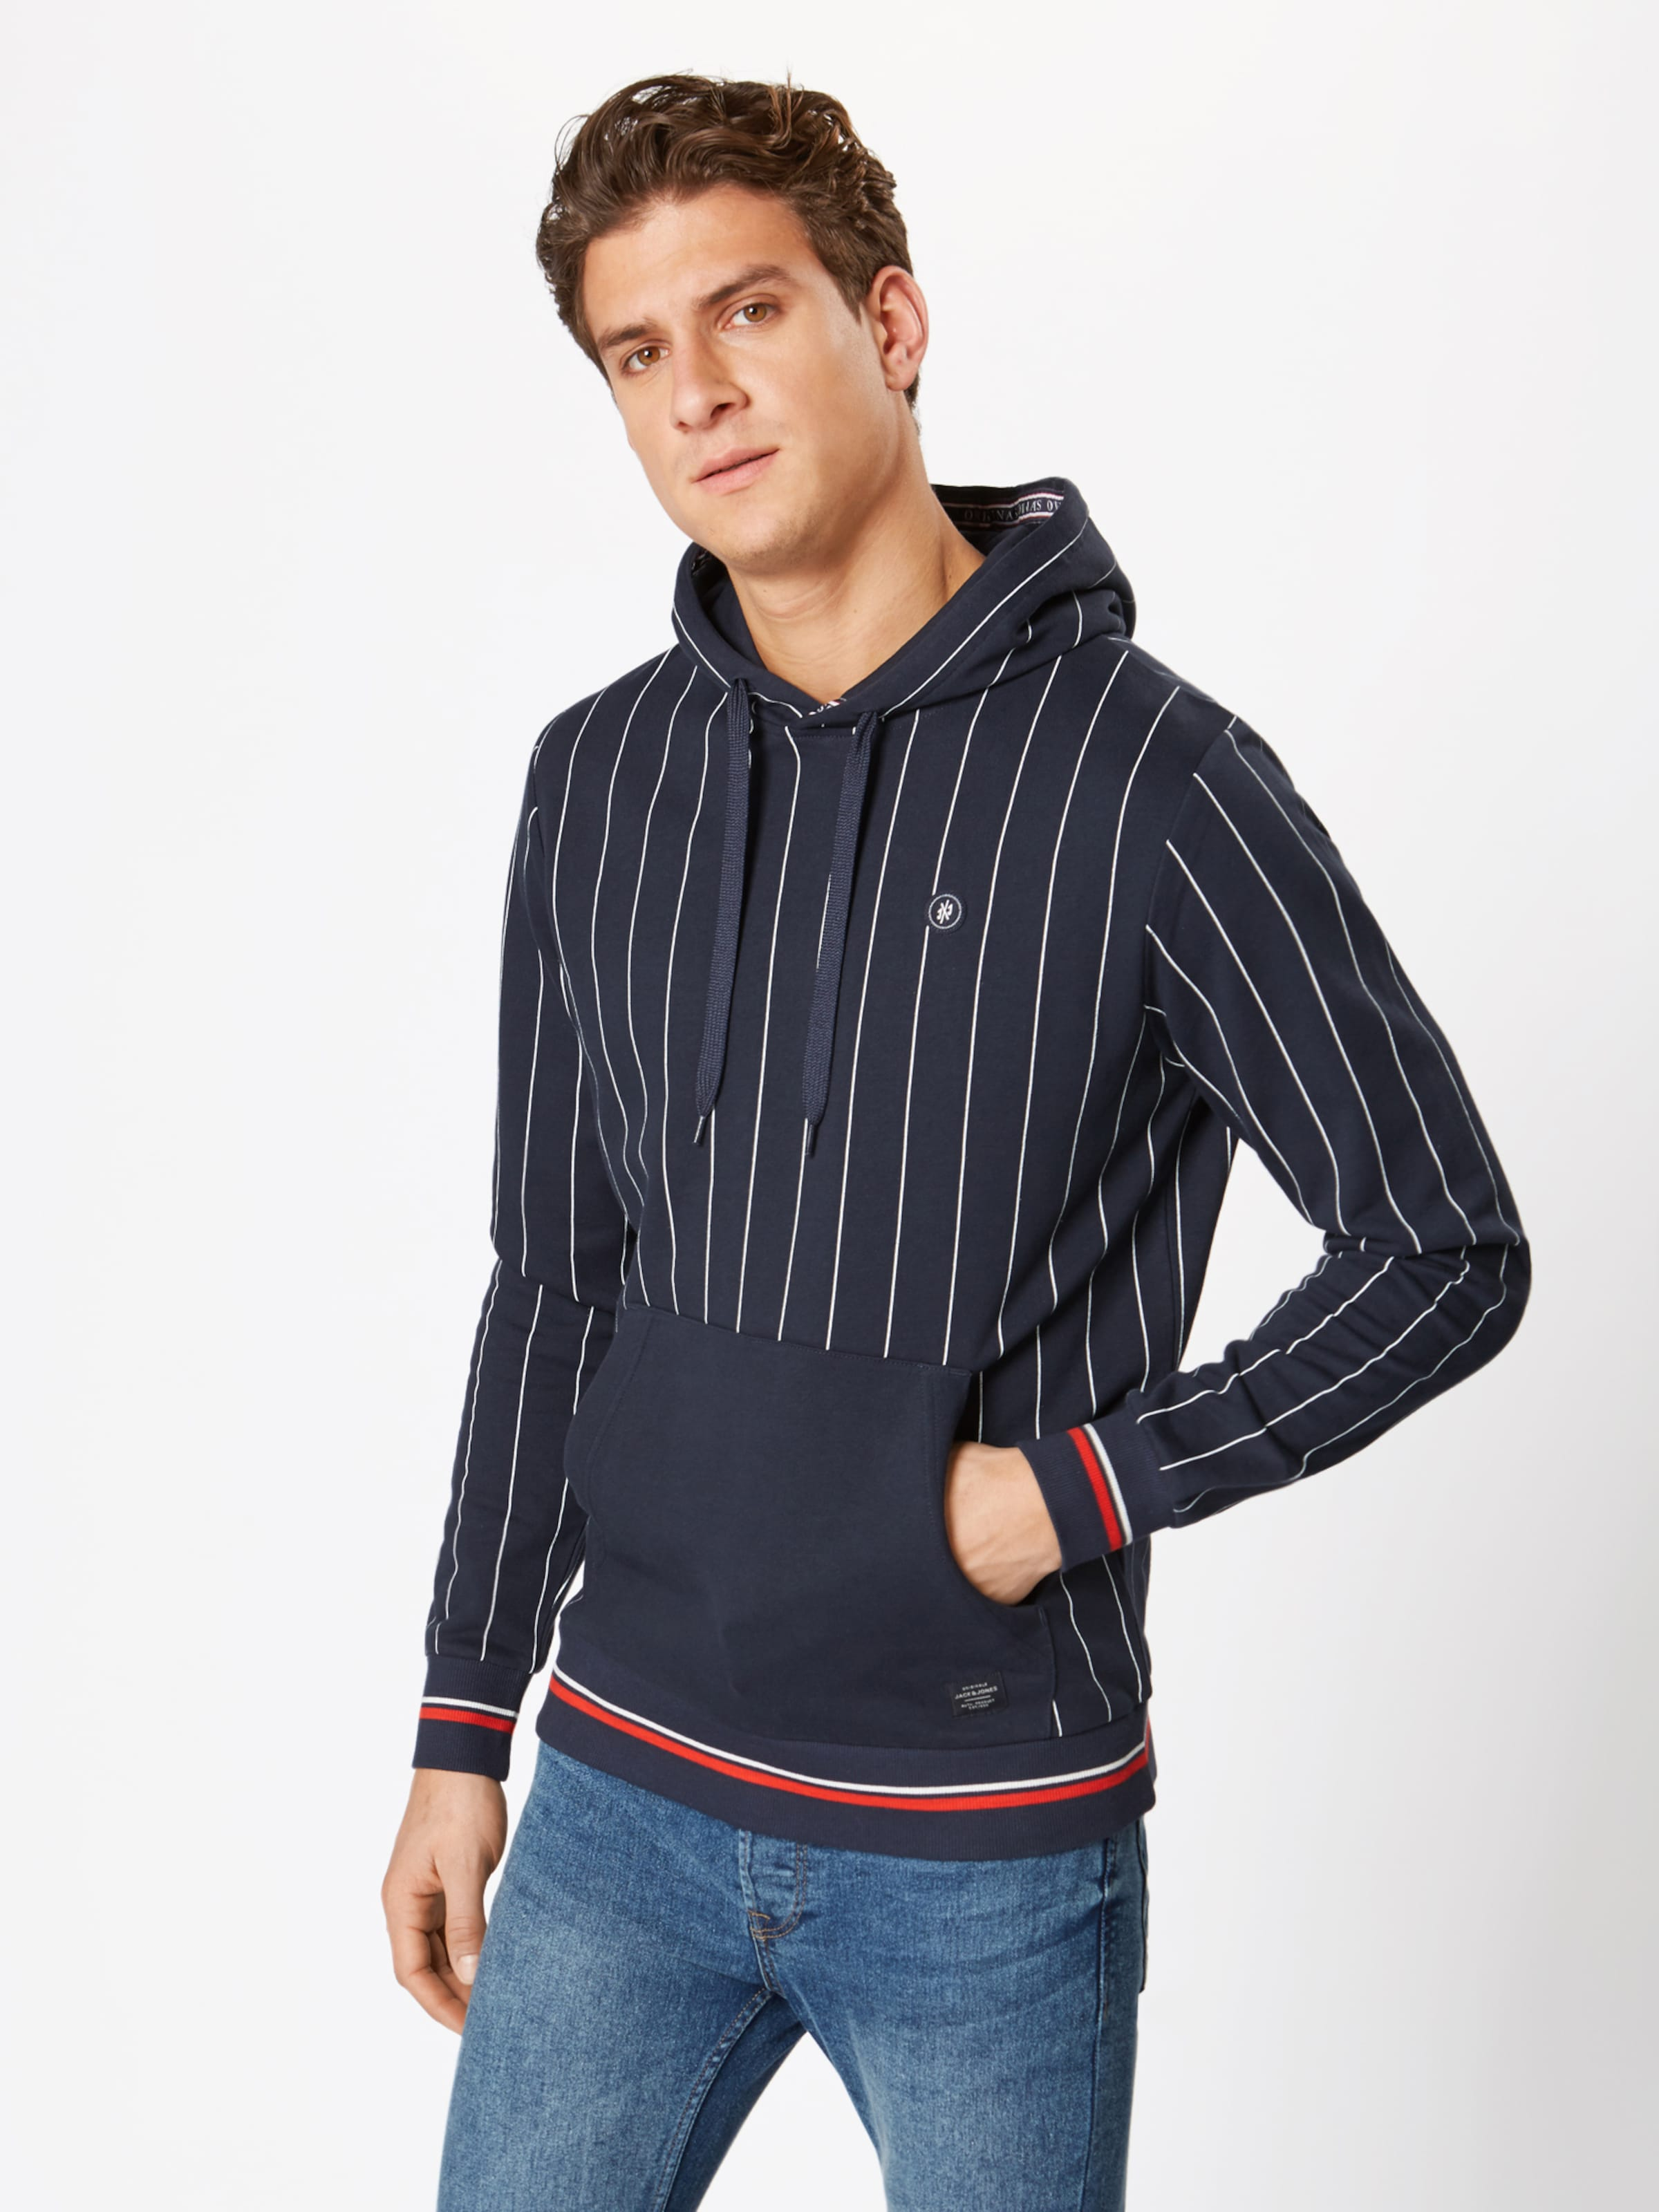 Jackamp; 'pinstripe' FoncéBlanc Jones En shirt Sweat Bleu T1ucFJlK3